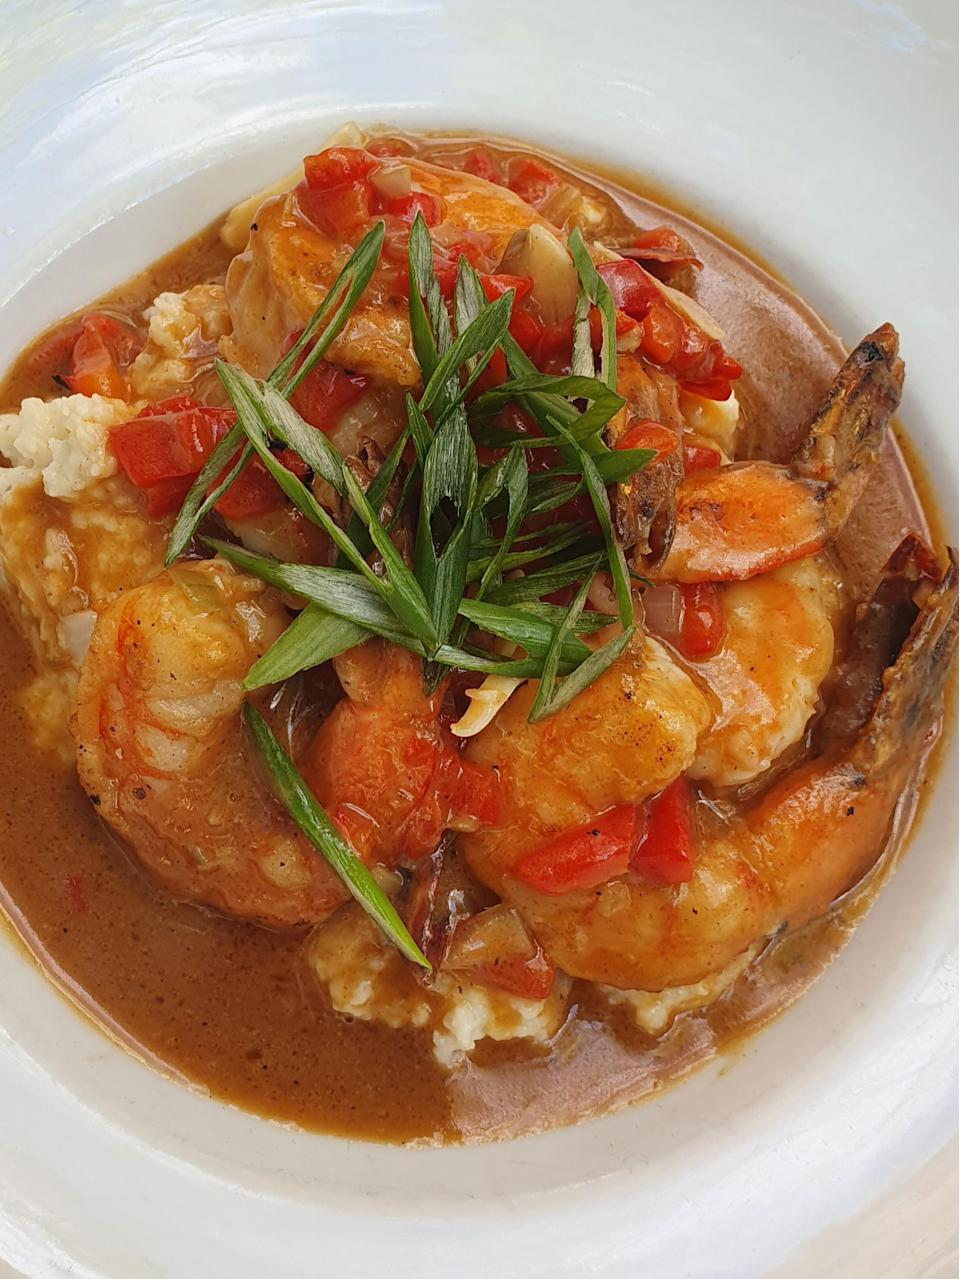 """<p>This shrimp etouffee and grits recipe adds flavor to traditional grits using the light roux from the etouffee with shrimp scattered on top. It's the perfect mashup of traditional Southern food and <a href=""""https://www.thedailymeal.com/cook/louisiana-cajun-creole-mardi-gras-recipes?referrer=yahoo&category=beauty_food&include_utm=1&utm_medium=referral&utm_source=yahoo&utm_campaign=feed"""" rel=""""nofollow noopener"""" target=""""_blank"""" data-ylk=""""slk:classic Cajun recipes"""" class=""""link rapid-noclick-resp"""">classic Cajun recipes</a>.</p> <p><a href=""""https://www.thedailymeal.com/best-recipes/creole-shrimp-etouffee-grits?referrer=yahoo&category=beauty_food&include_utm=1&utm_medium=referral&utm_source=yahoo&utm_campaign=feed"""" rel=""""nofollow noopener"""" target=""""_blank"""" data-ylk=""""slk:For the Shrimp Etouffee and Grits recipe, click here."""" class=""""link rapid-noclick-resp"""">For the Shrimp Etouffee and Grits recipe, click here. </a></p>"""